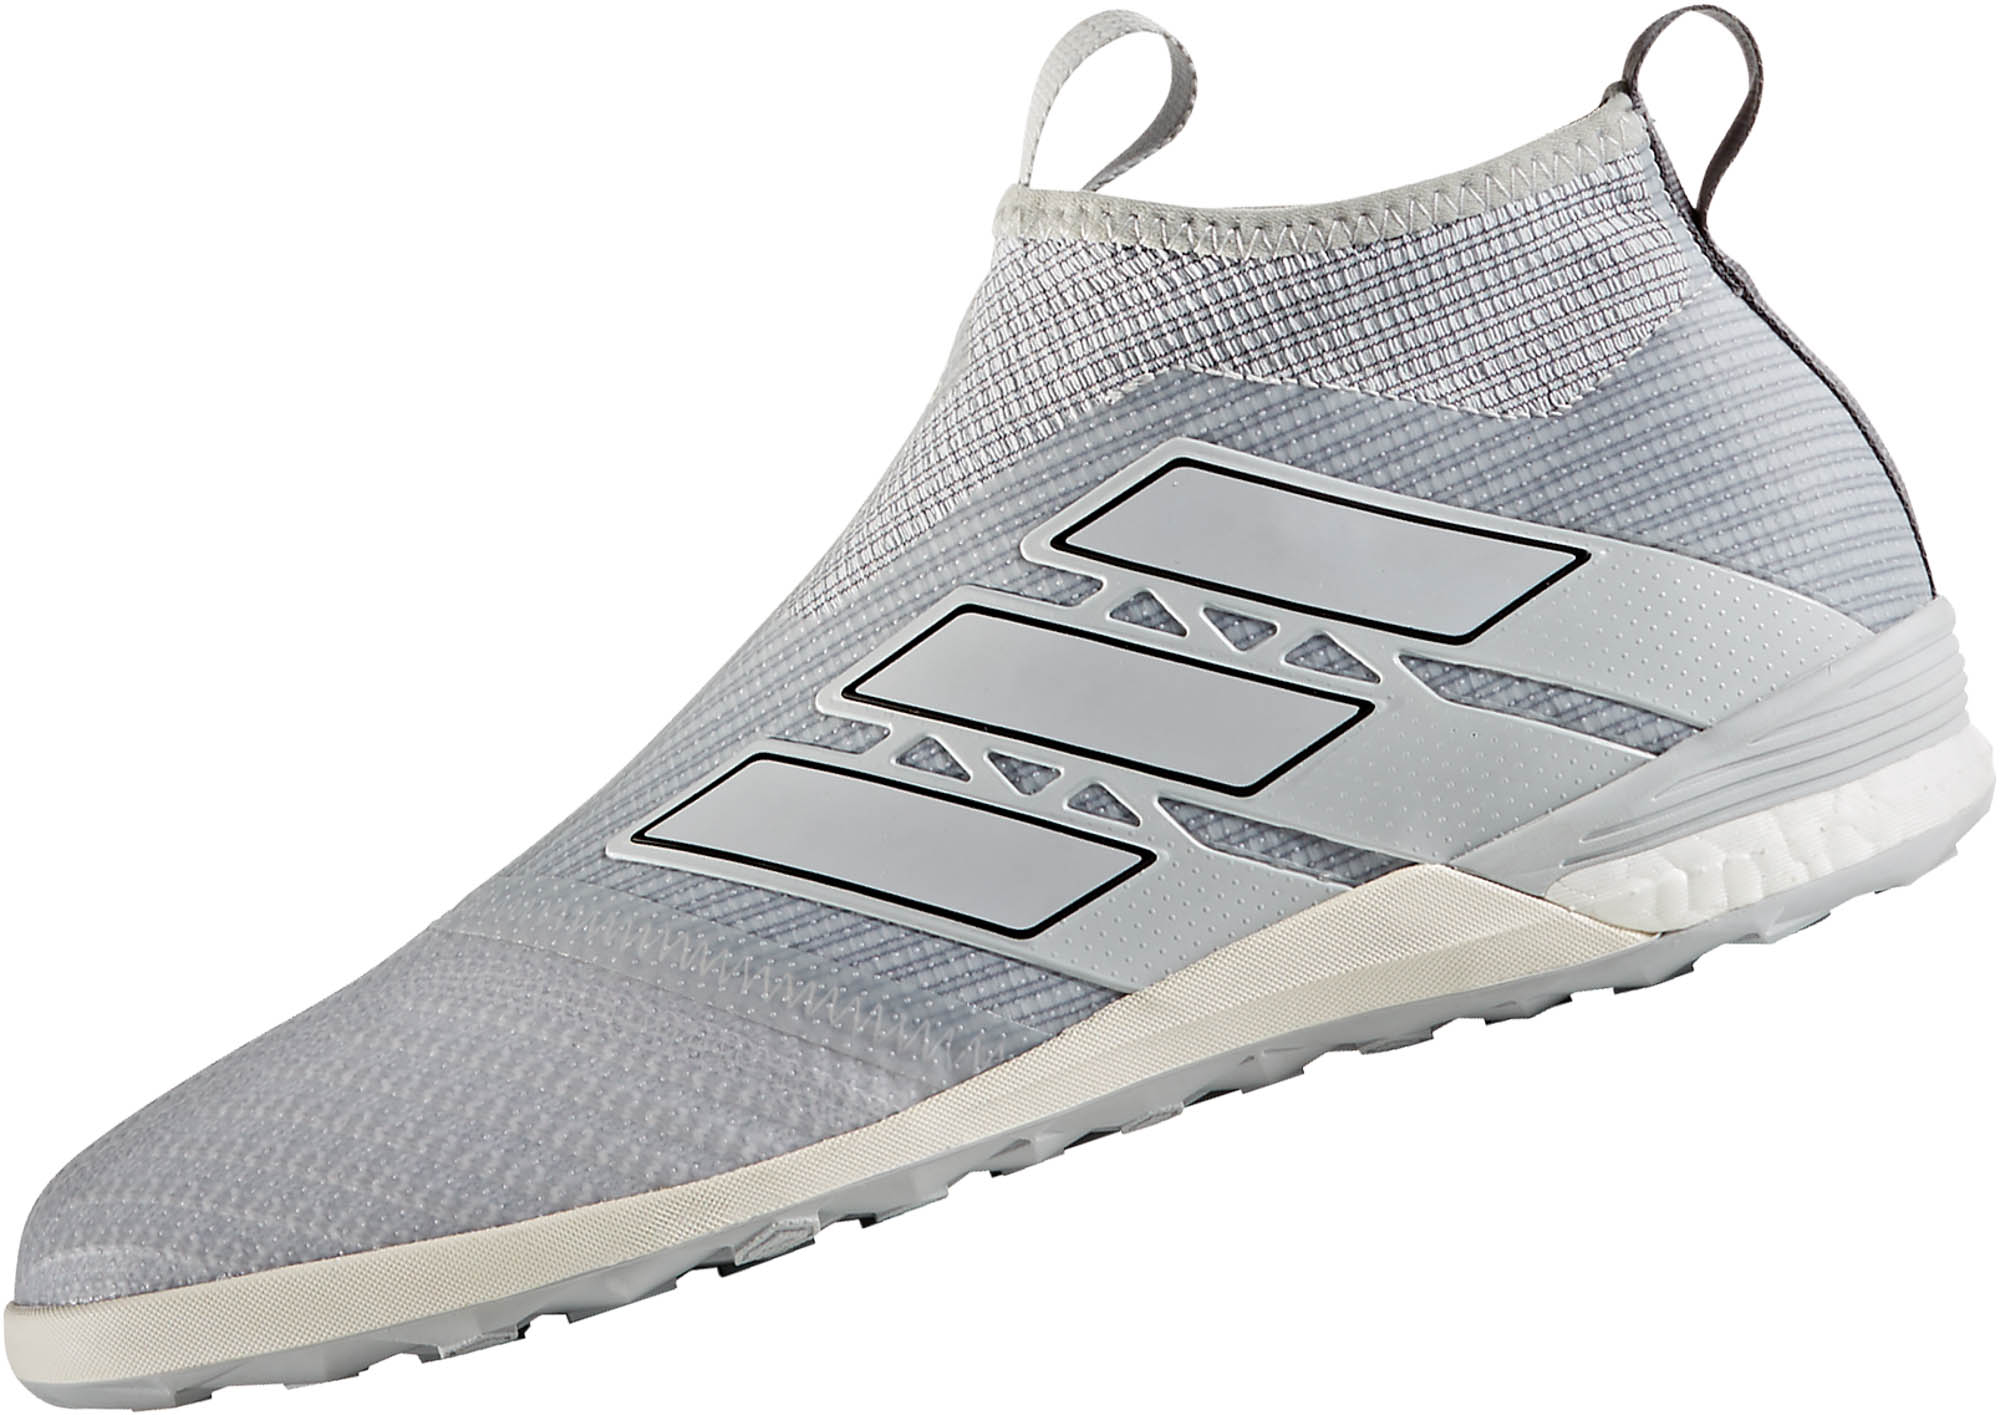 on sale 0b76e 8c9e2 adidas ACE Tango 17+ Purecontrol IN - Clear Grey & Onix ...